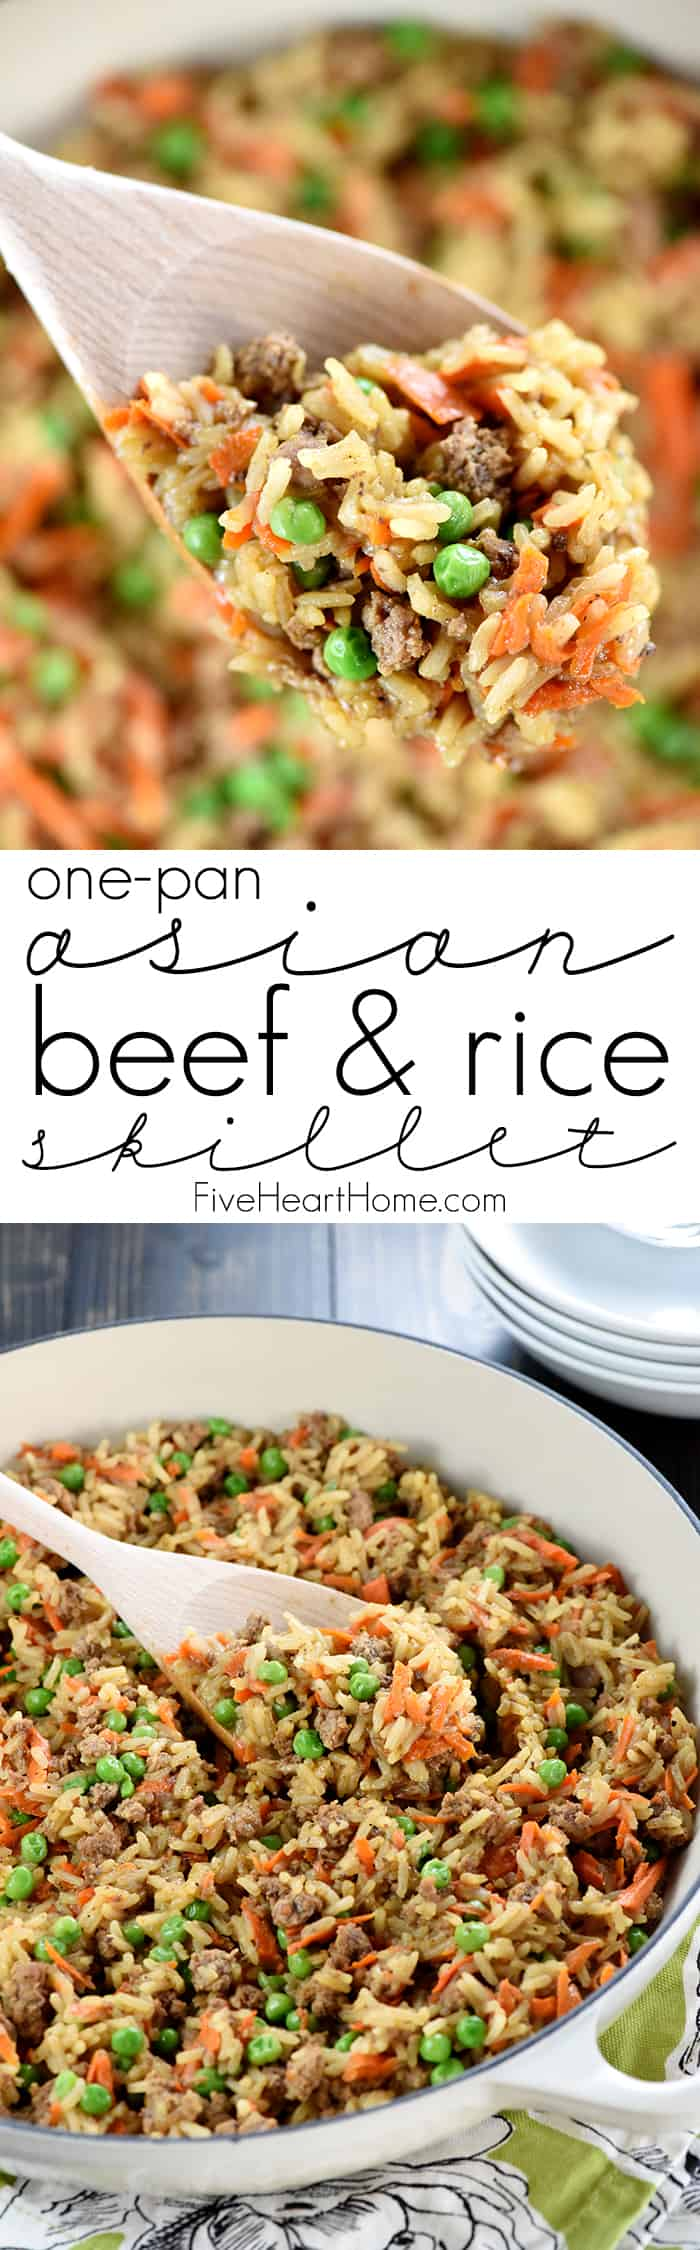 One Pan Asian Ground Beef And Rice Recipe Fivehearthome